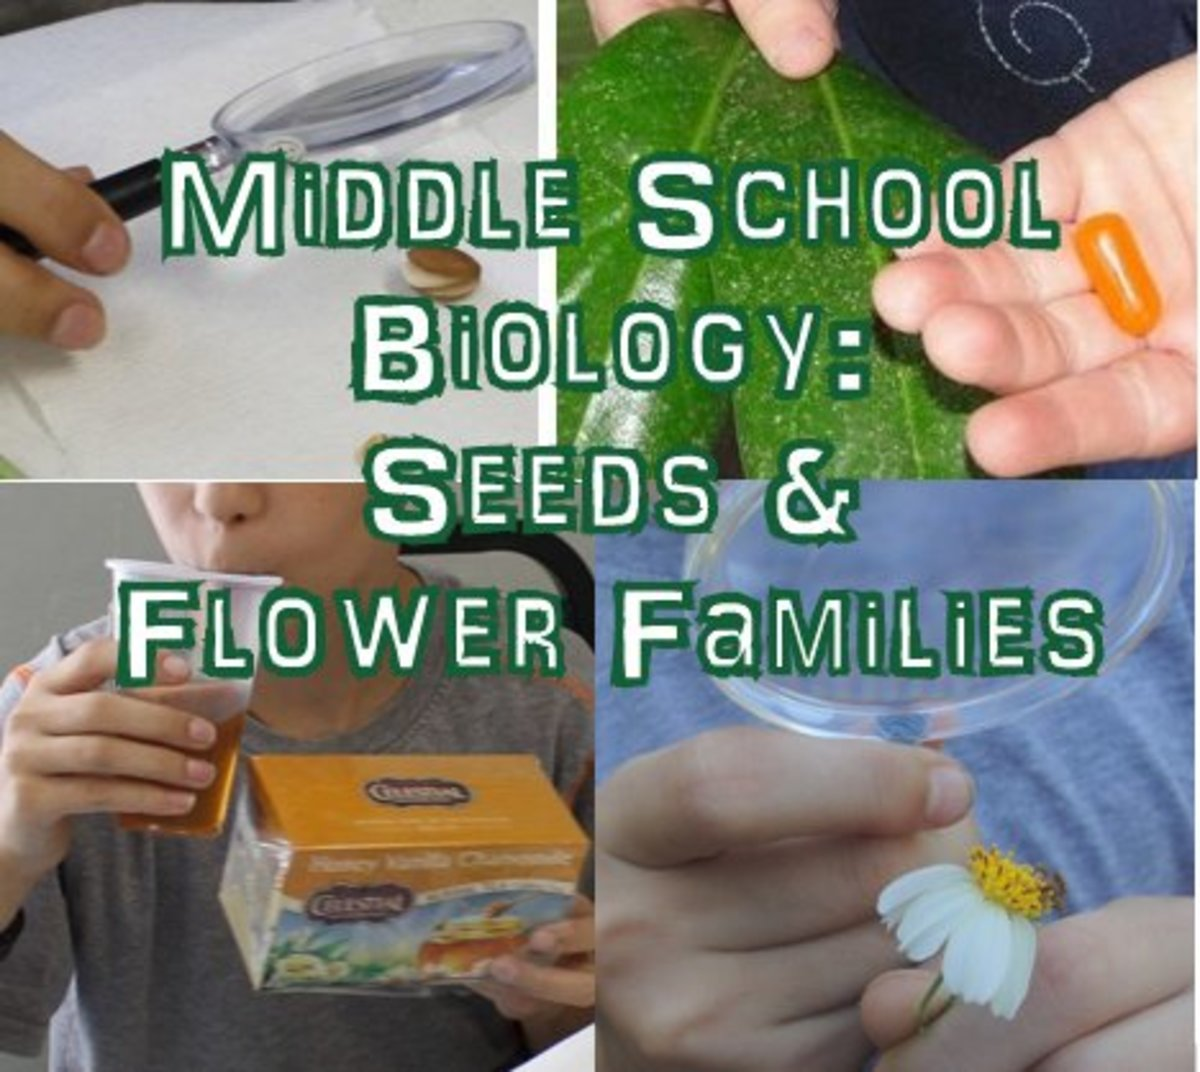 Middle School Biology Lesson on Seeds and Flower Families (Botany)